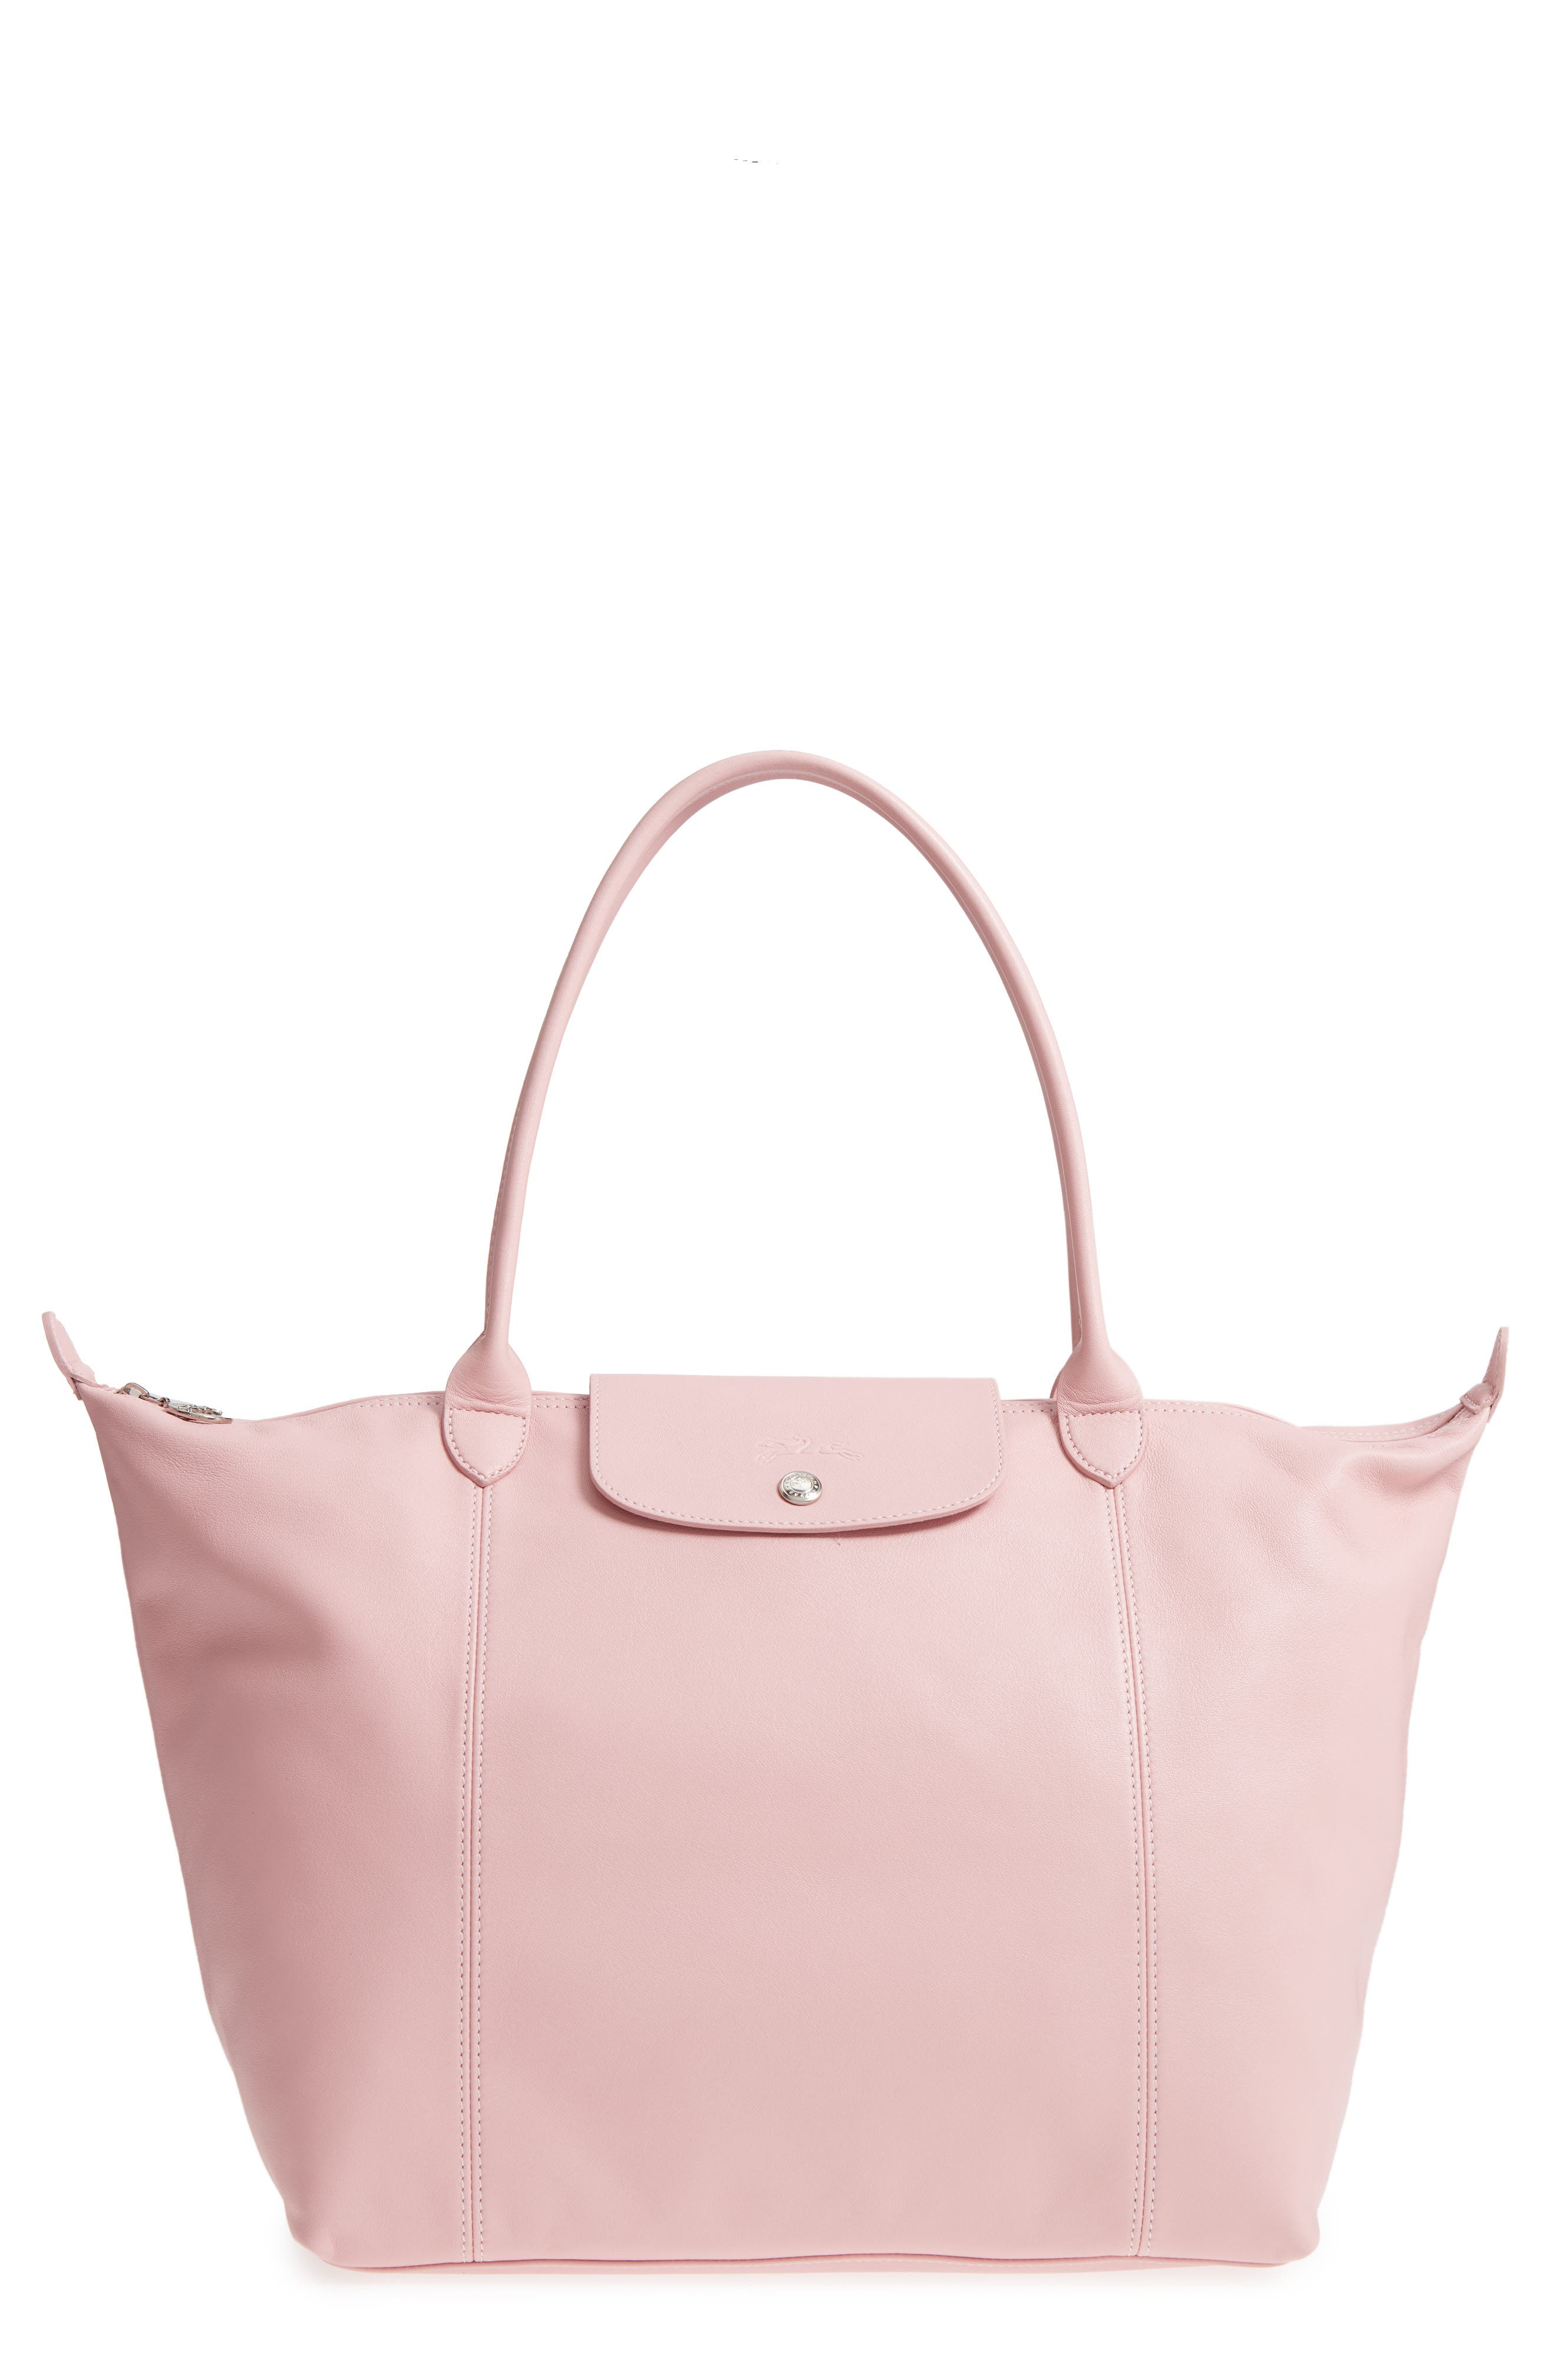 Longchamp Le Pliage Cuir Leather Tote (Nordstrom Exclusive). $530.00.  (103). Product Image. LIGHT PINK